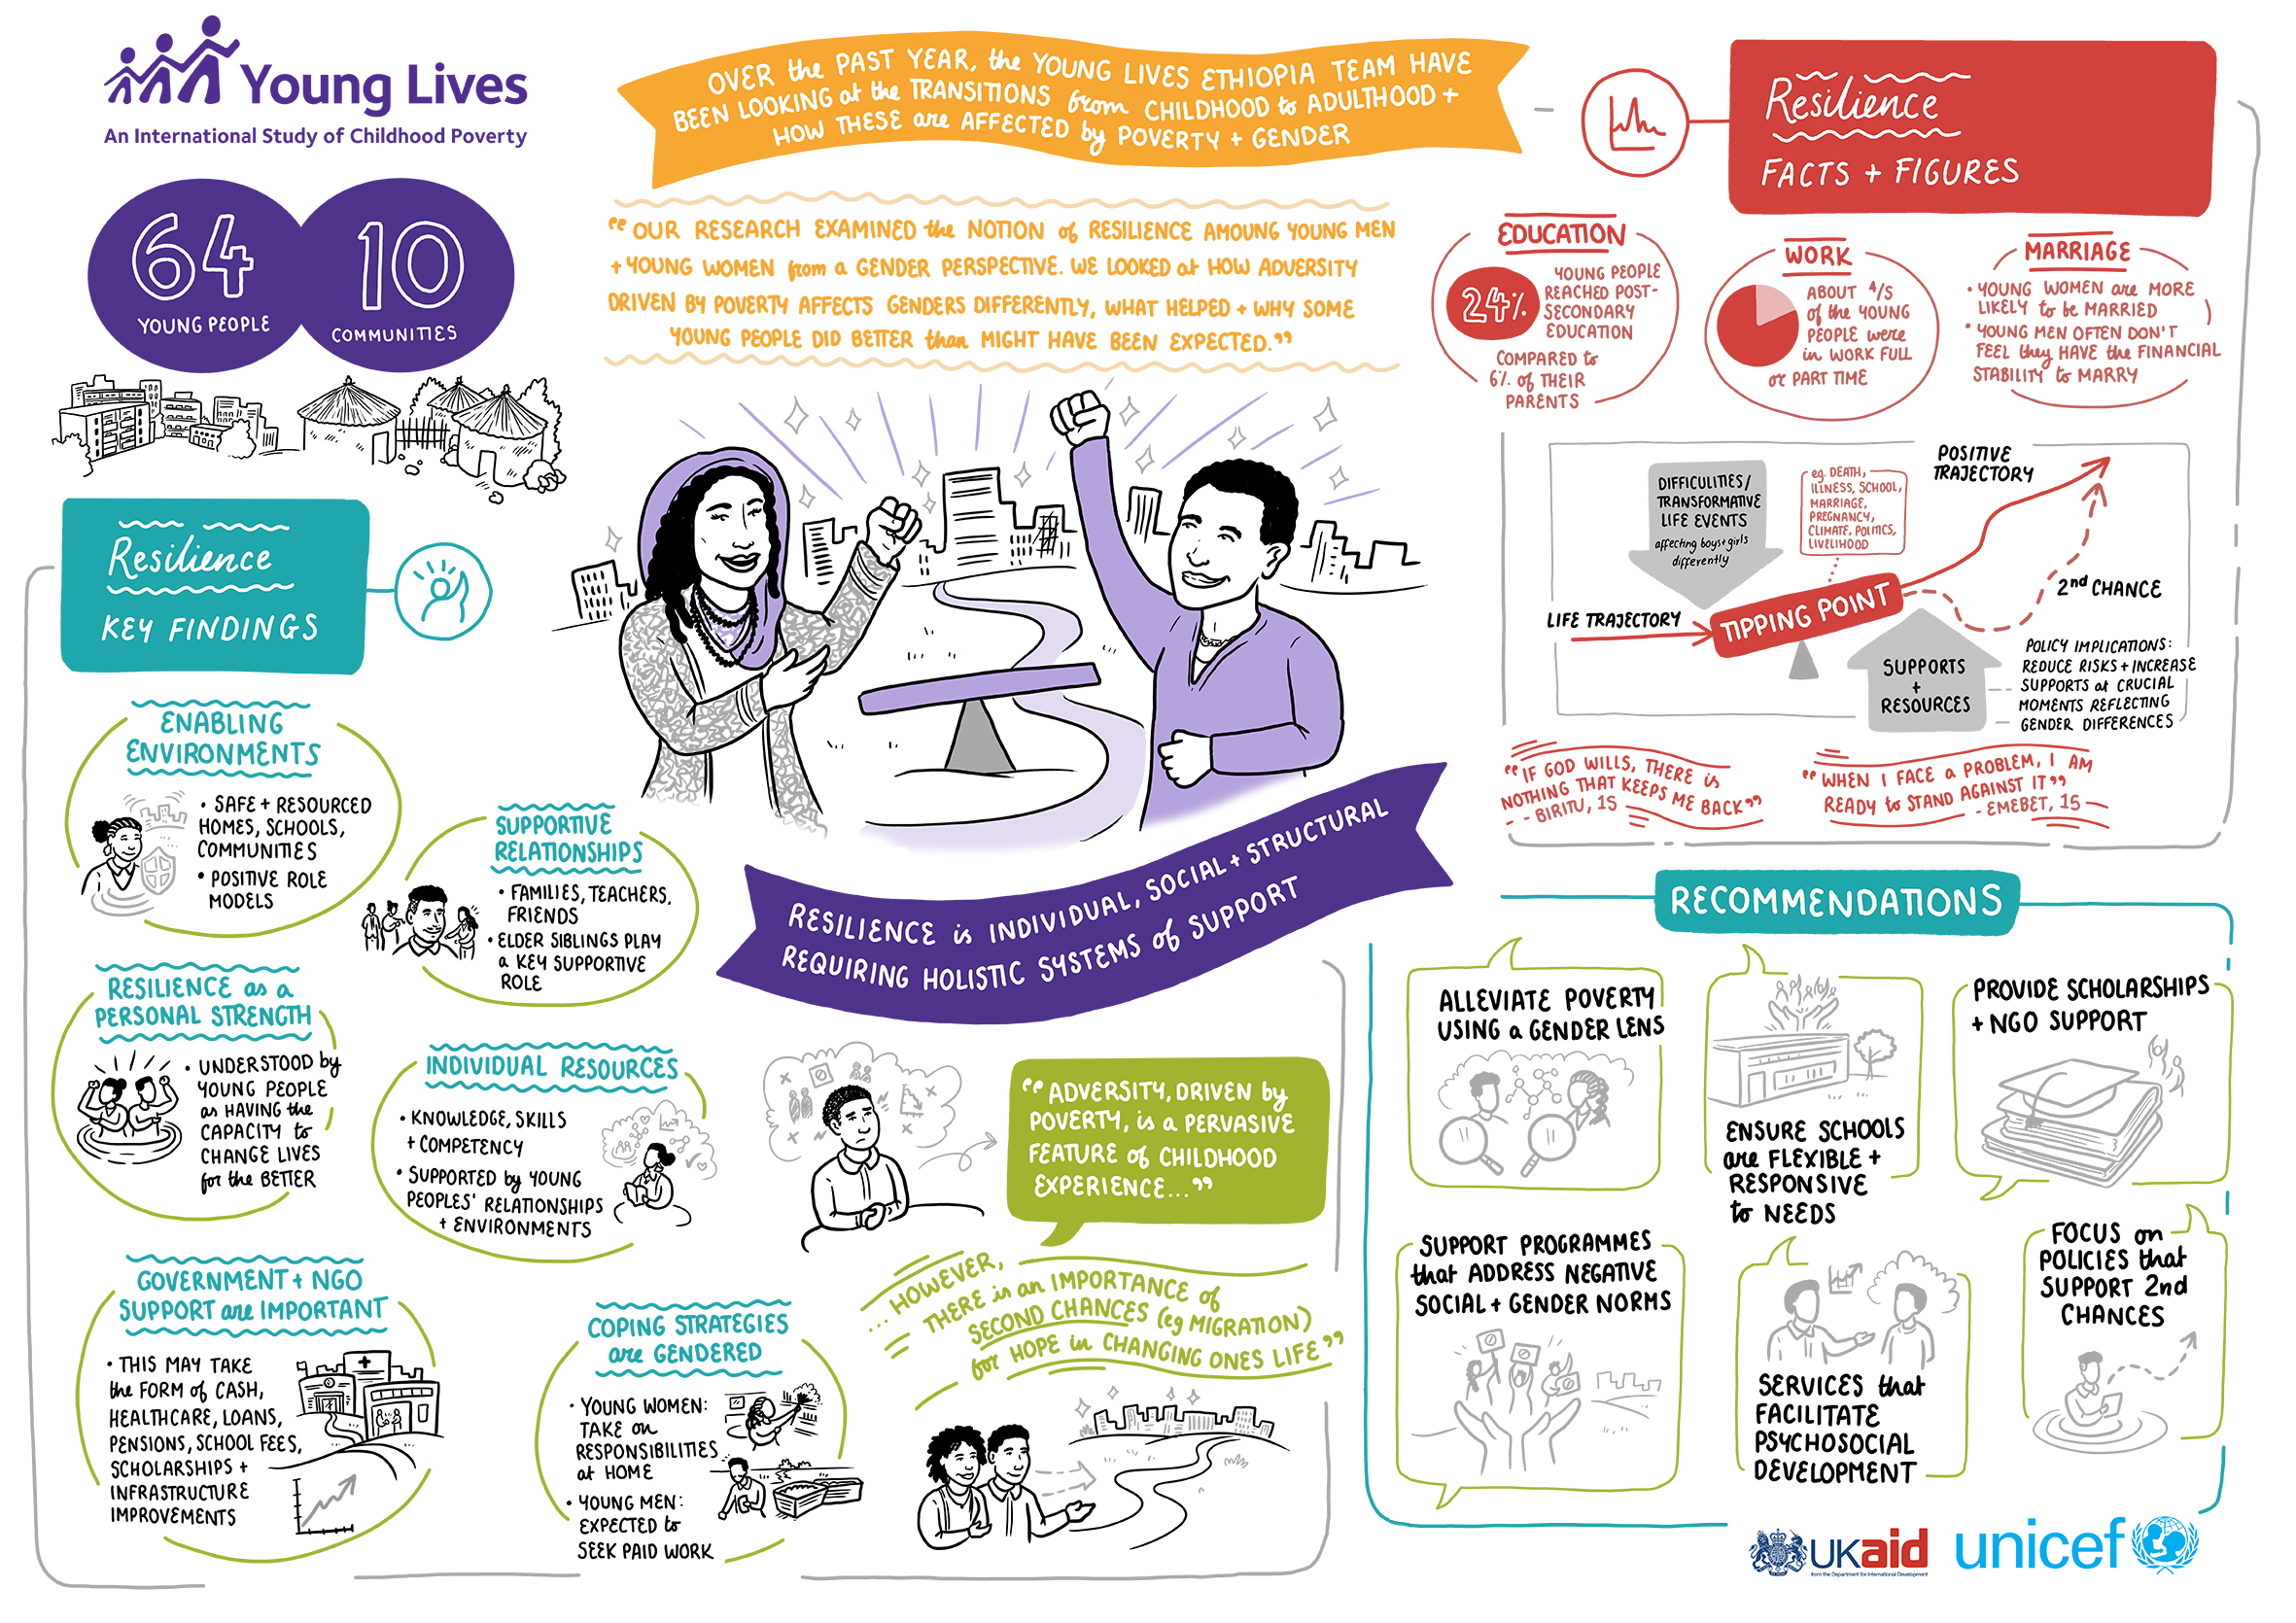 Infographic - Resilience is individual, social + structural requiring holistic systems of support